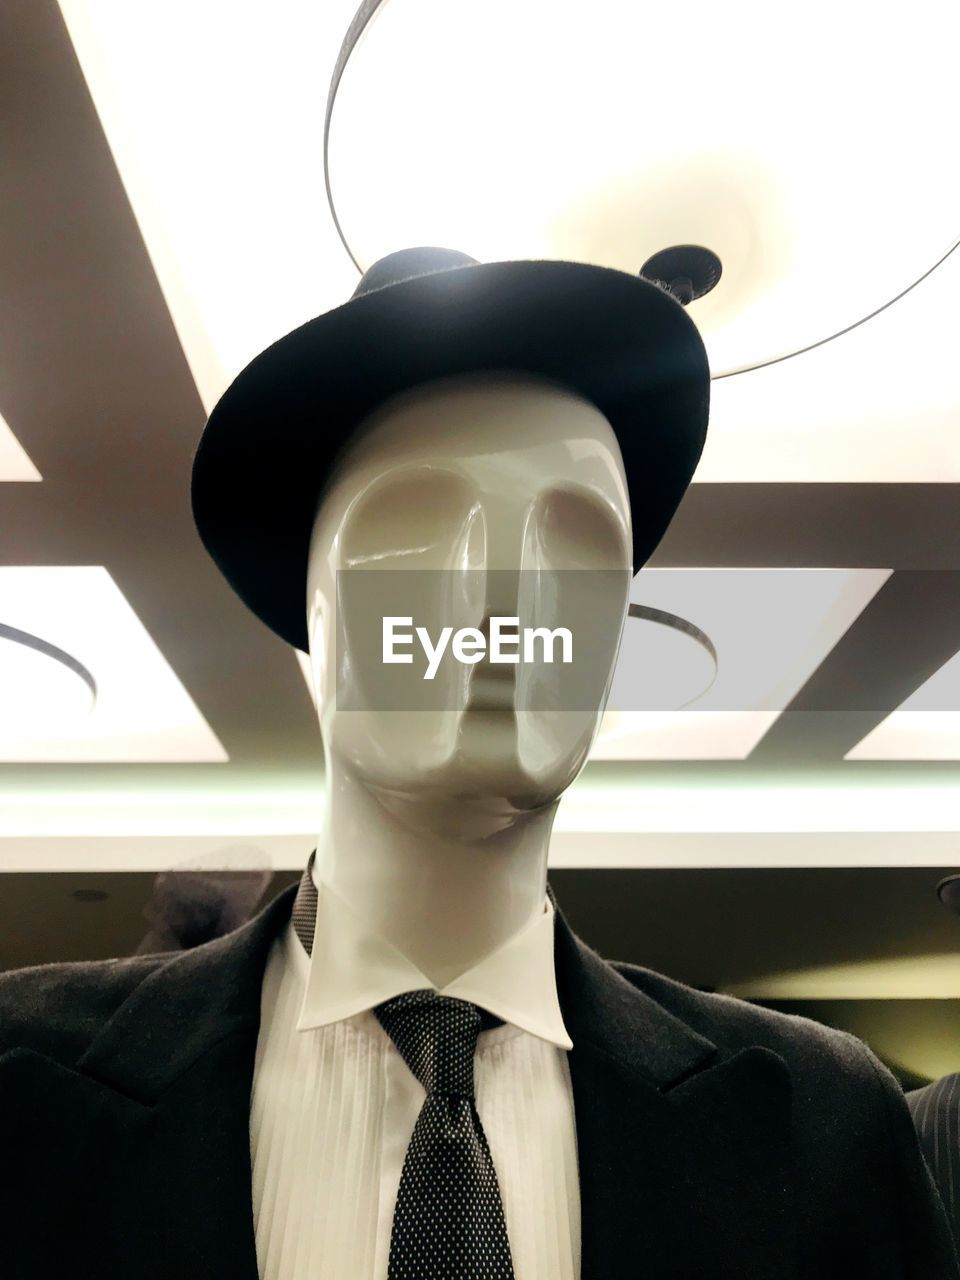 mannequin, human representation, representation, store, indoors, menswear, retail, male likeness, necktie, shopping, retail display, female likeness, clothing, business, no people, well-dressed, window, clothing store, fashion, store window, consumerism, dressmaker's model